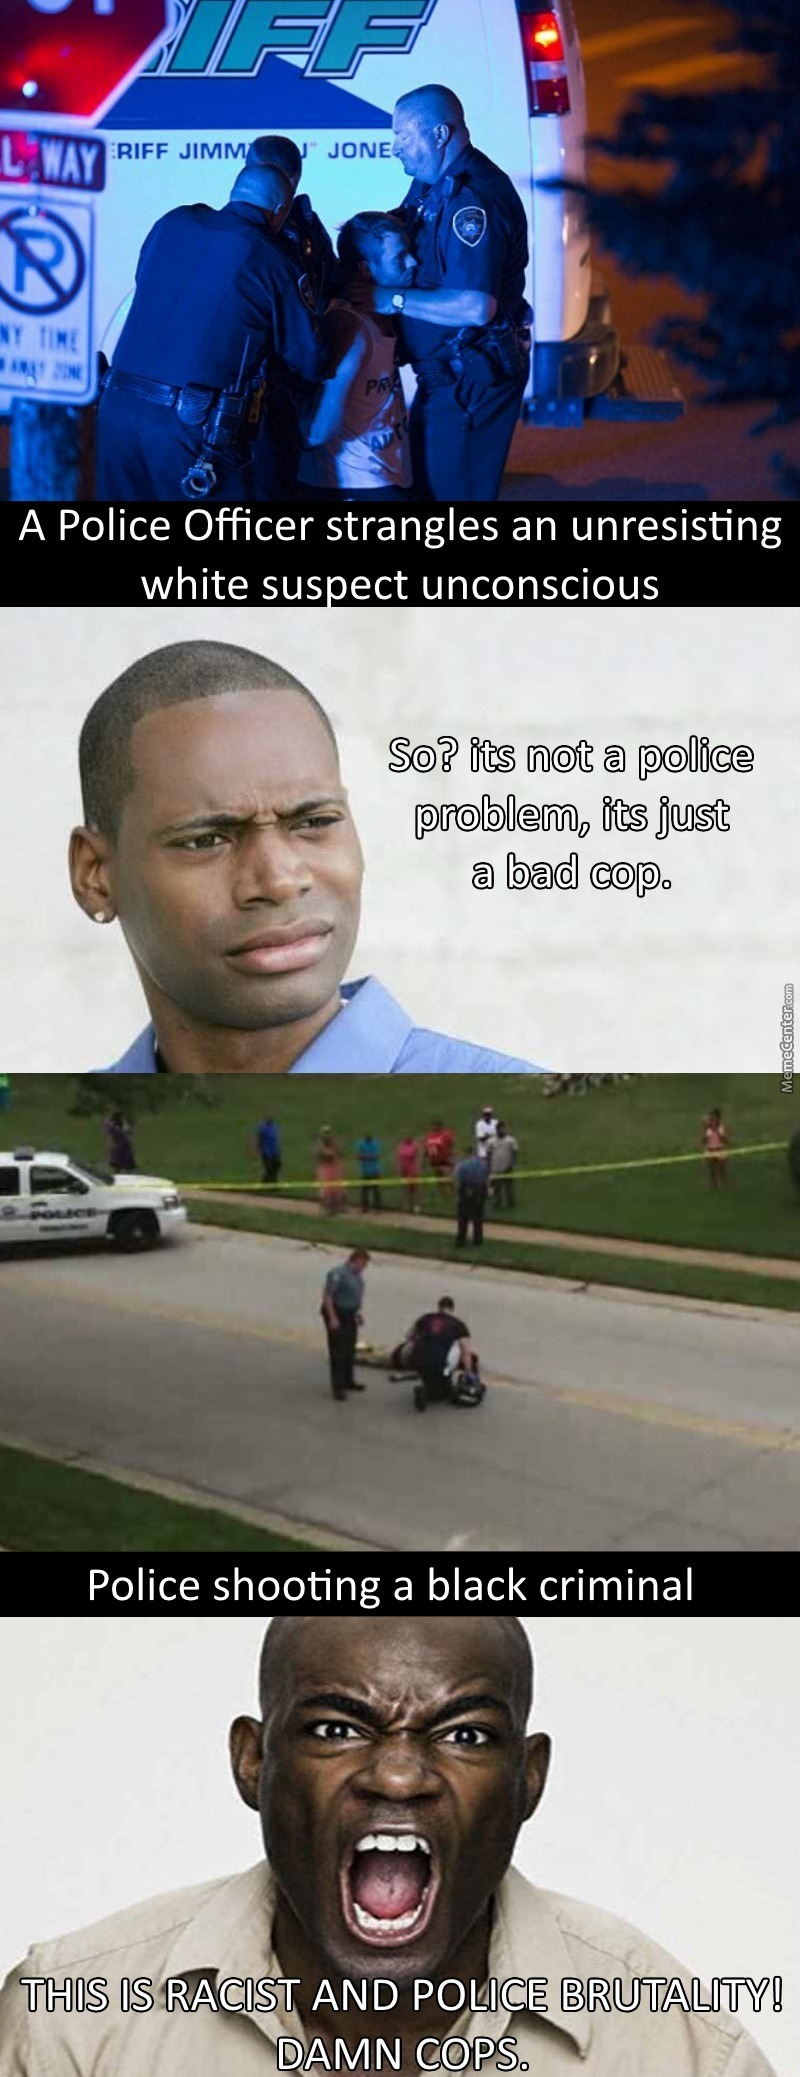 Its Only Racist If Its A Black Guy, Just Like Its Only Terrorism If Its A Muslim